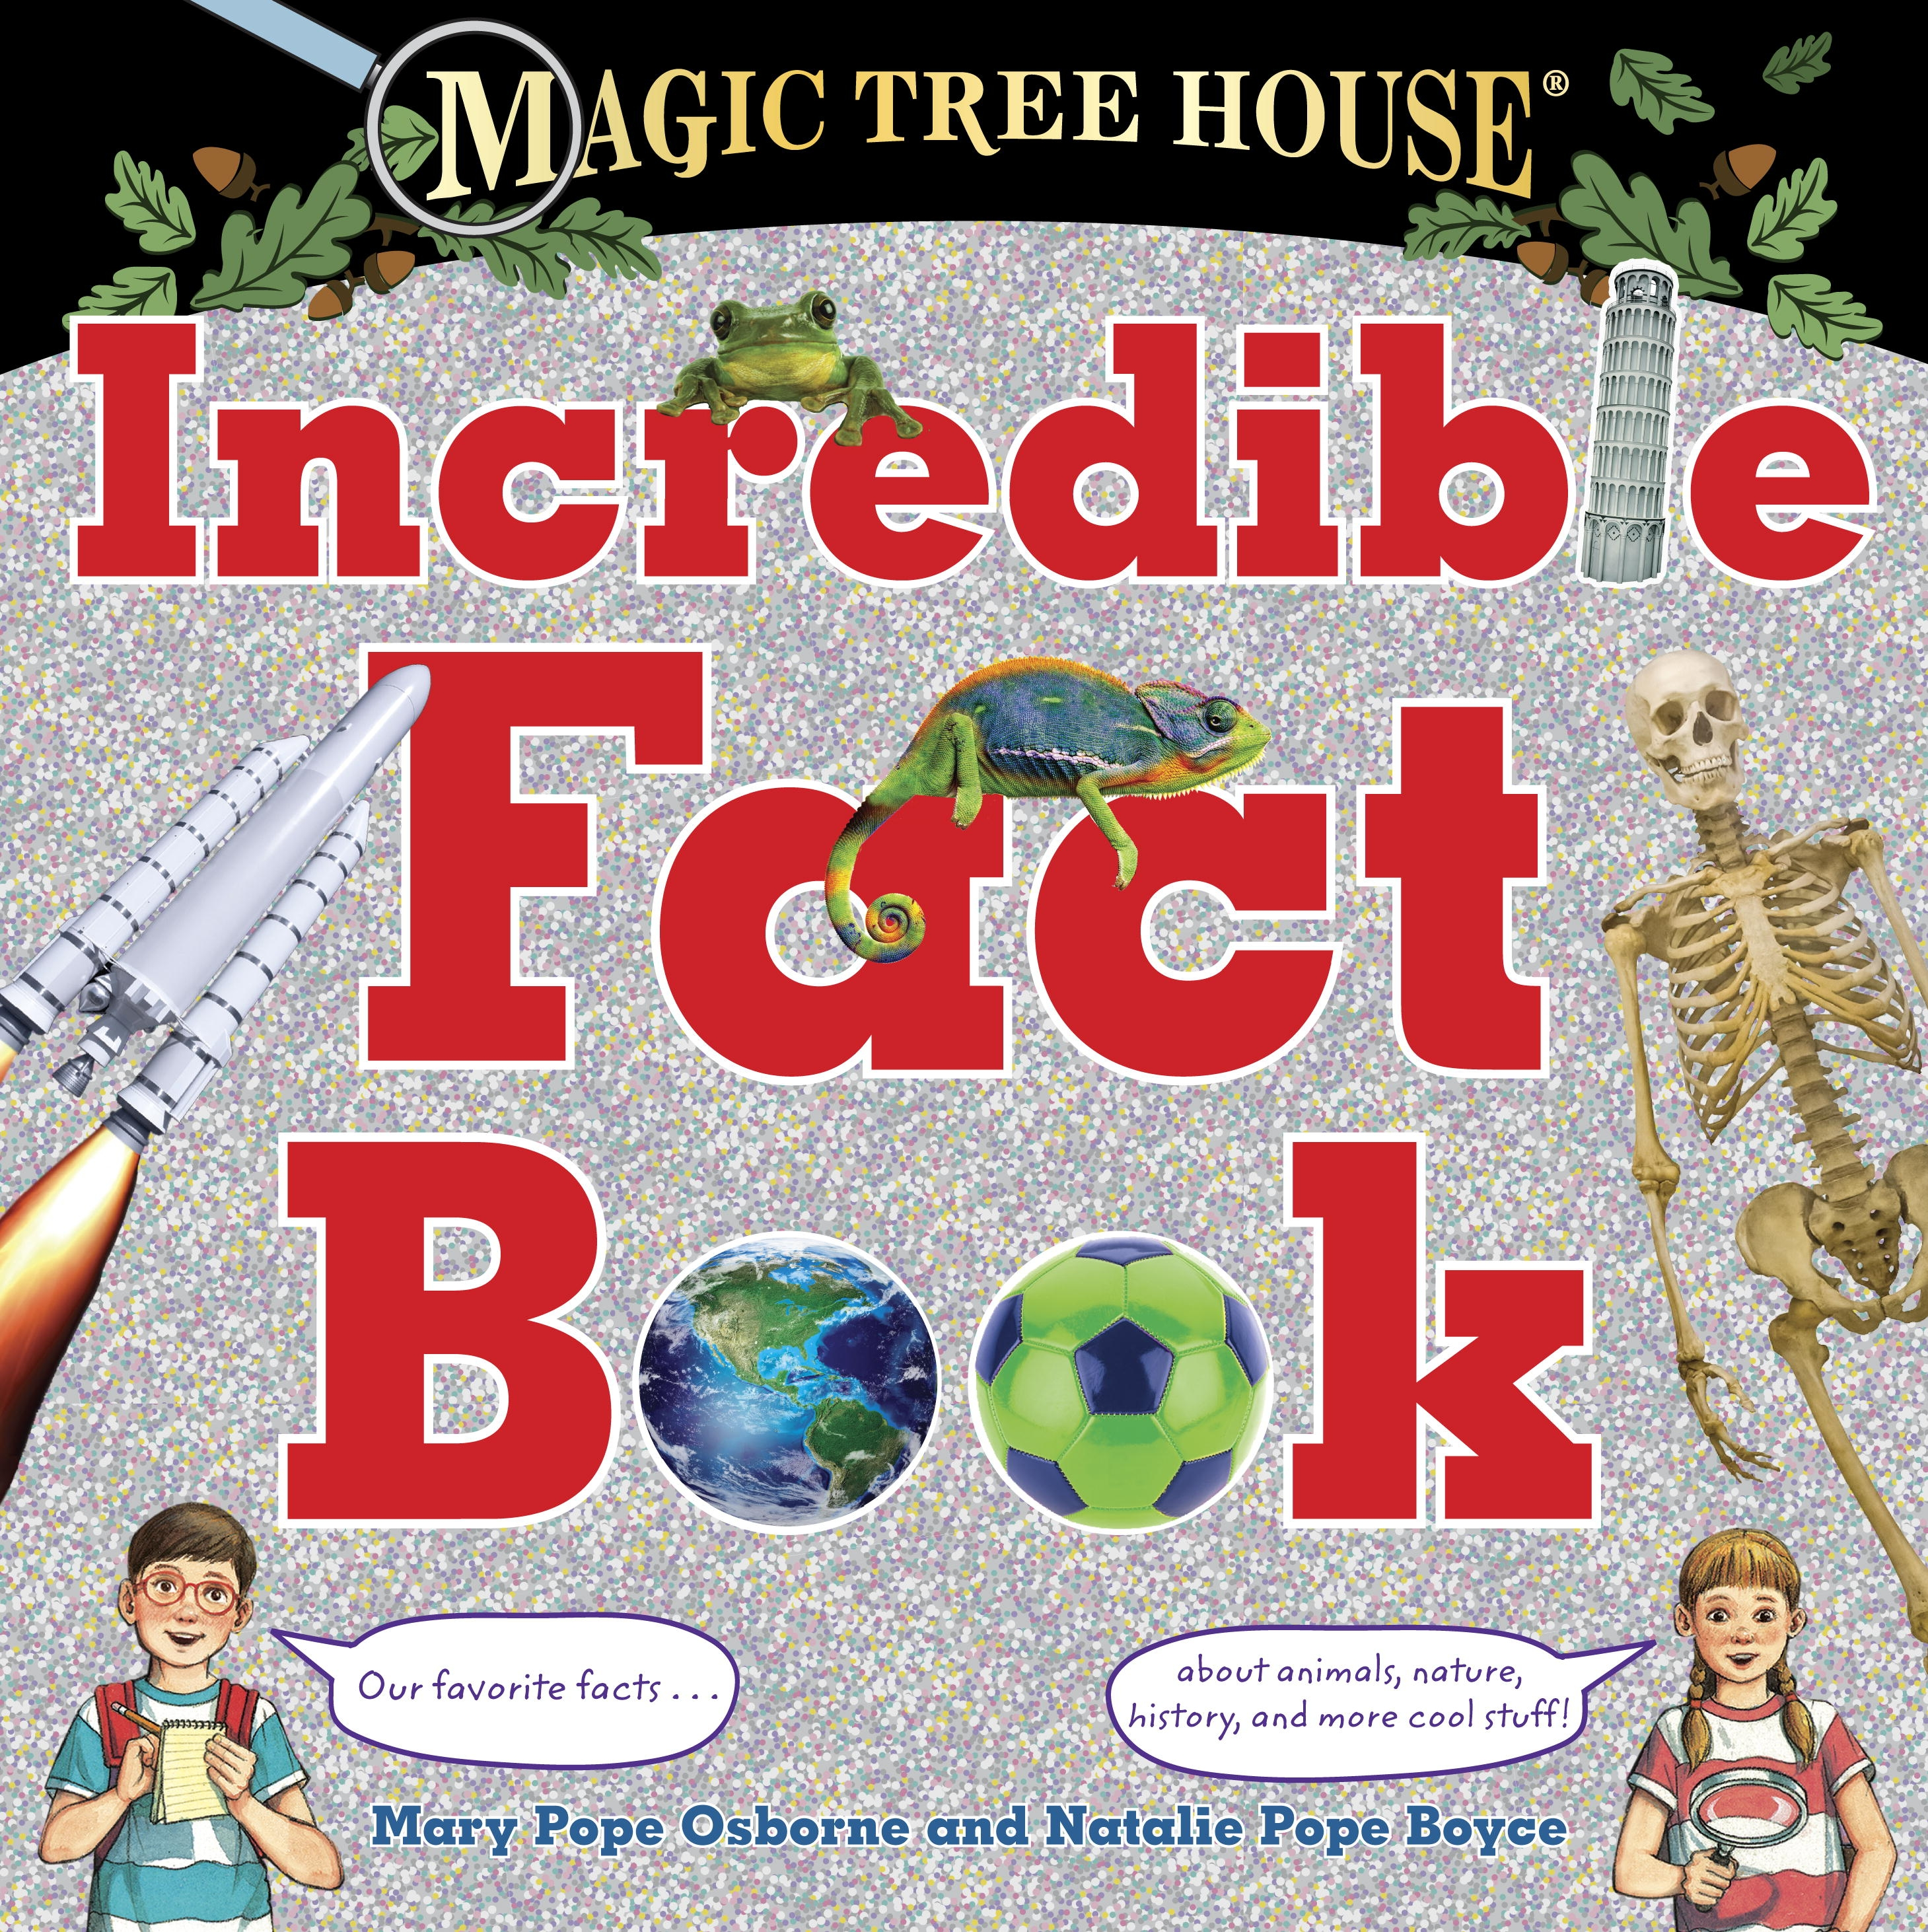 Magic Tree House Incredible Fact Book: Our Favorite Facts about Animals, Nature, History, and More Cool Stuff